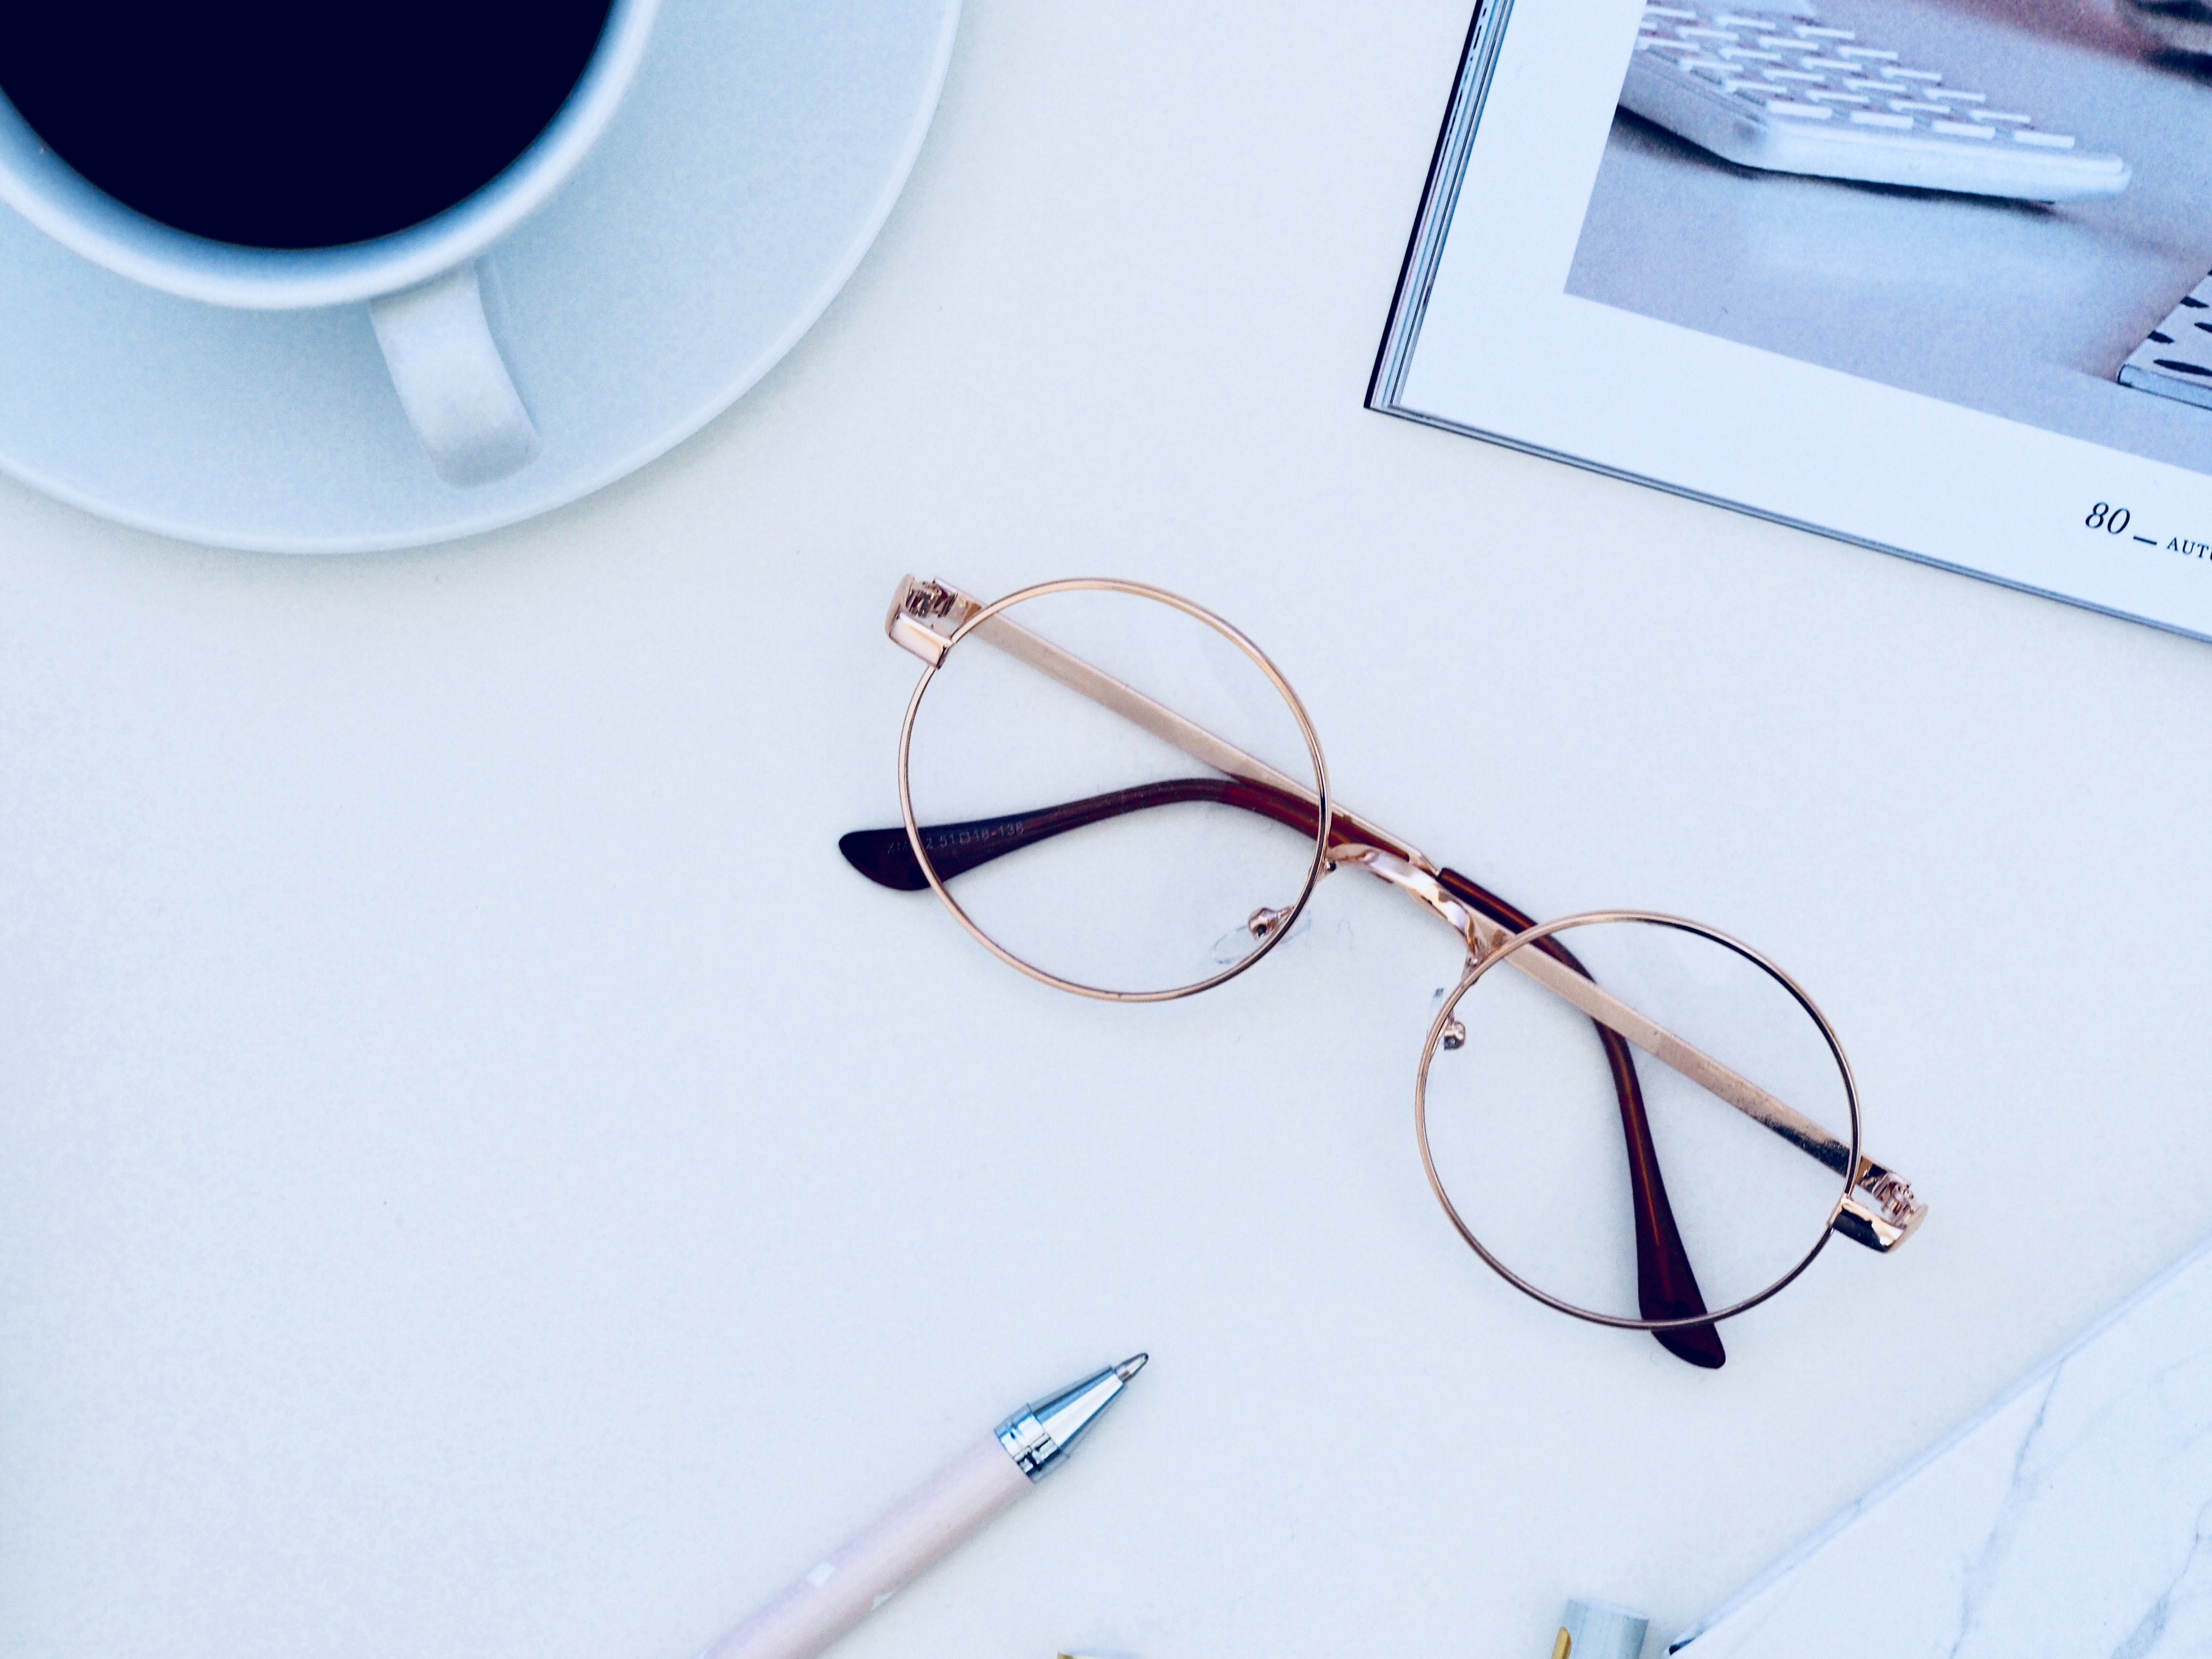 Employees value eye care for its wider health benefits